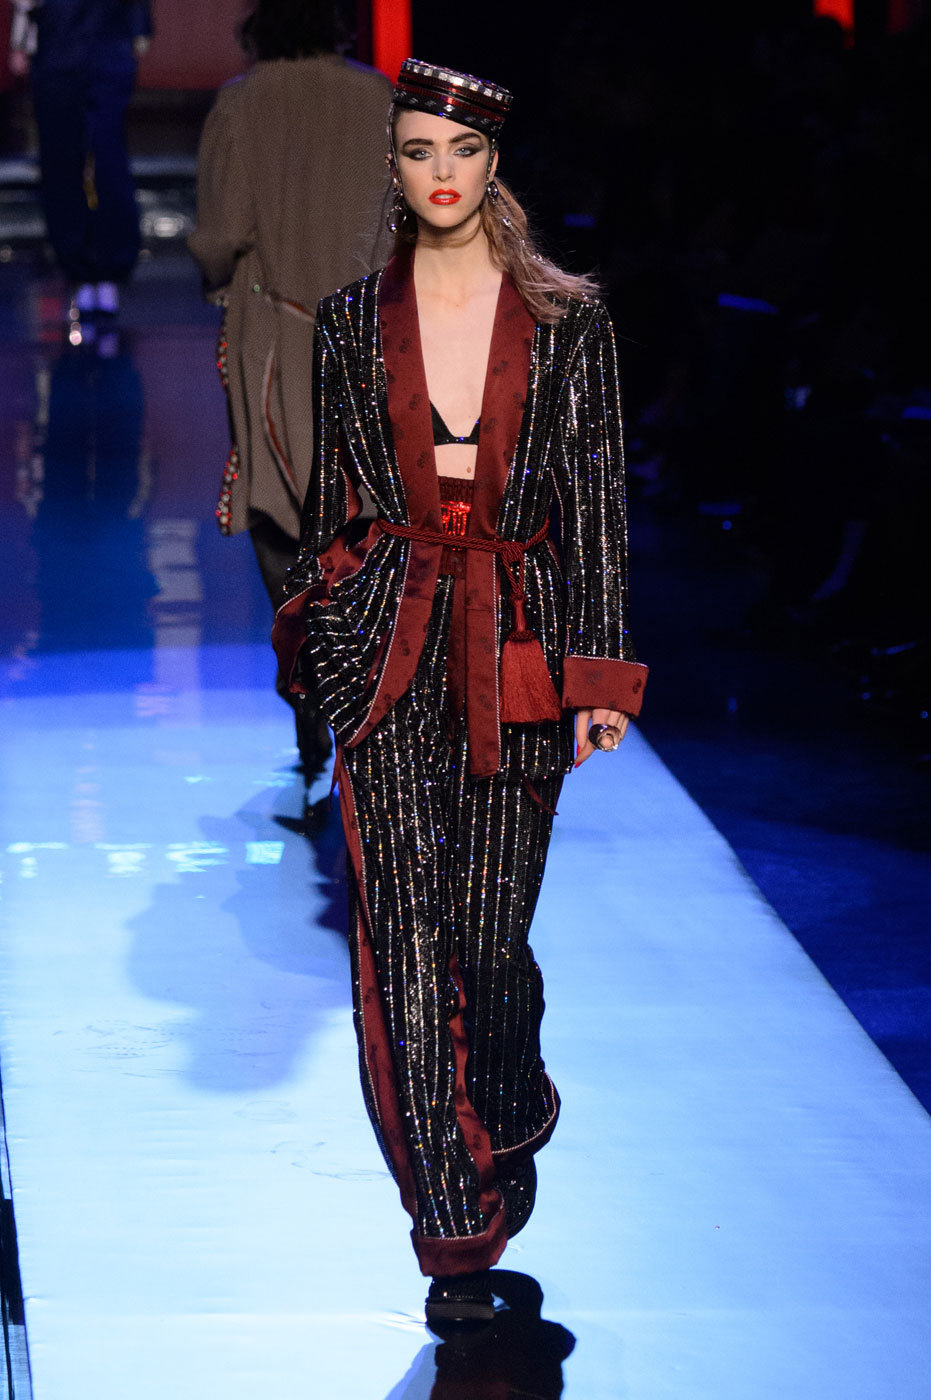 Jean paul gaultier haute couture spring summer 2016 for American haute couture